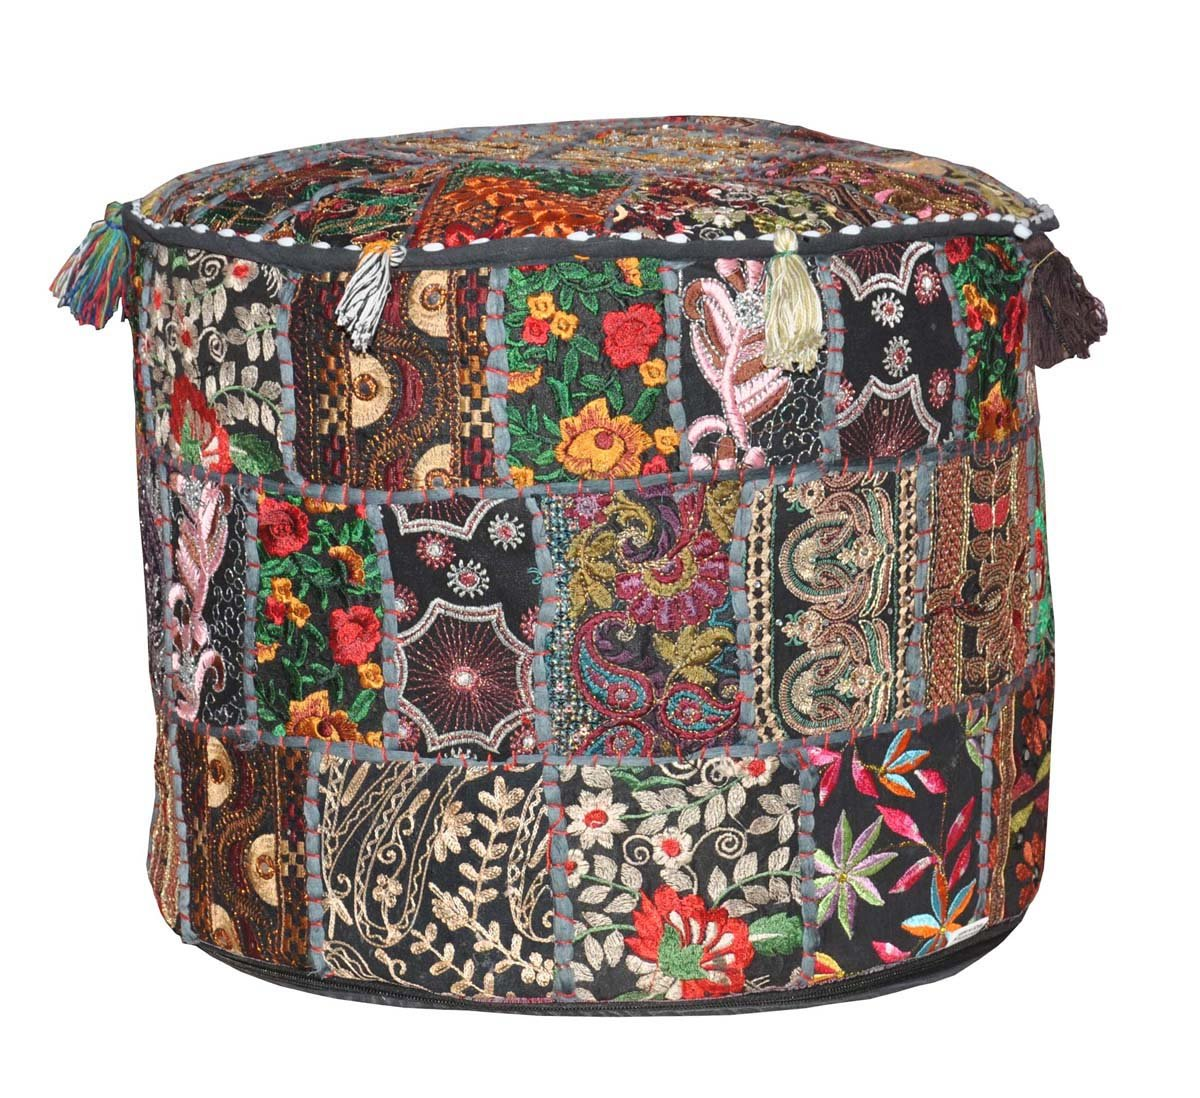 Traditional Decorative Ottoman Comfortable Floor Cushion Cover Foot Stool Cover Embellished With Embroidery & Patchwork…